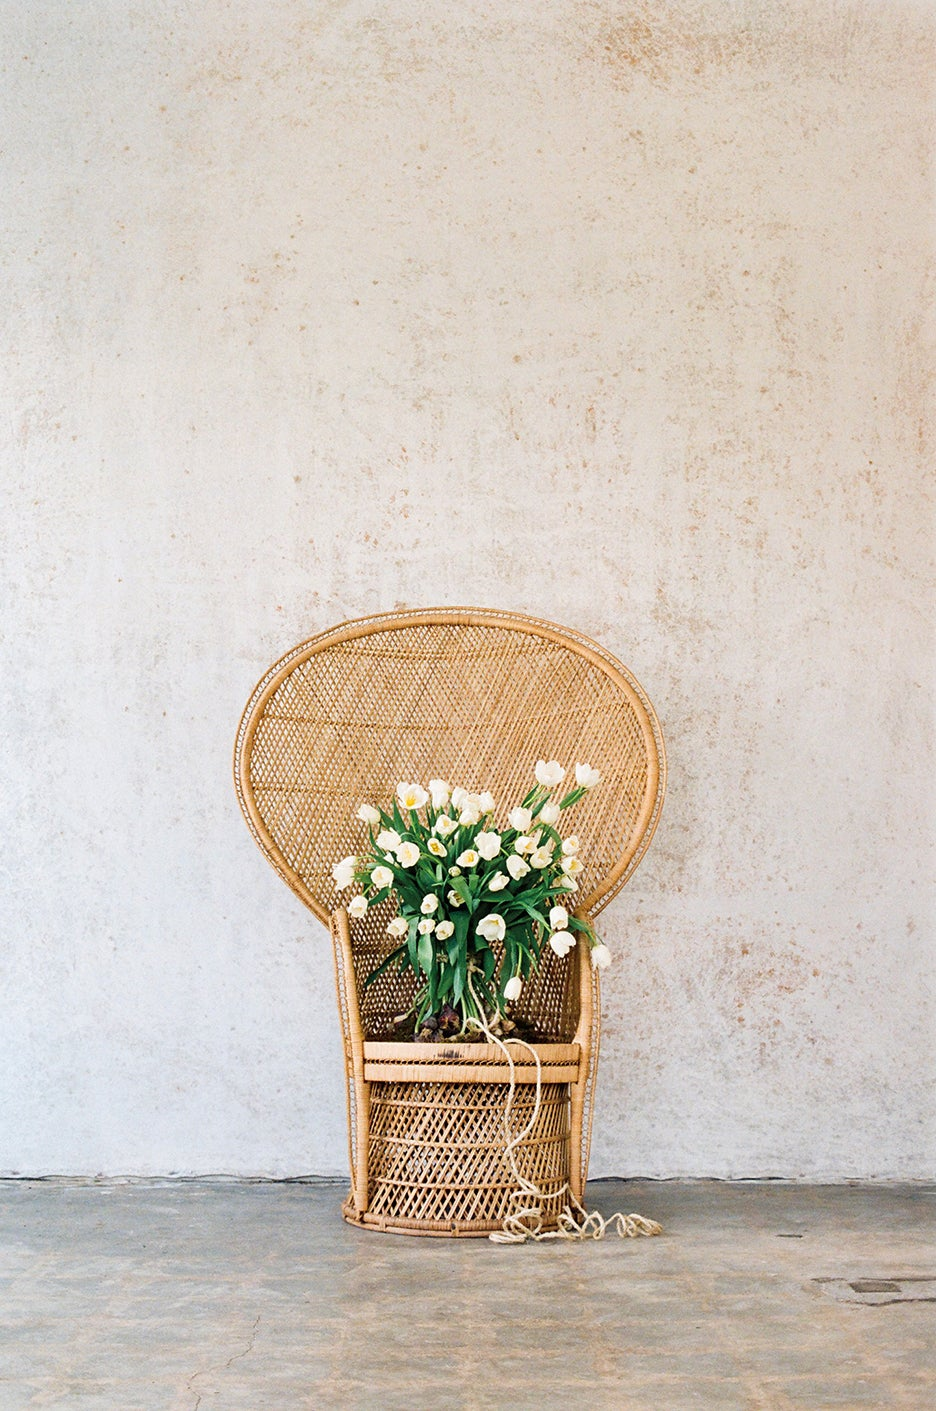 Flowers on a chair.